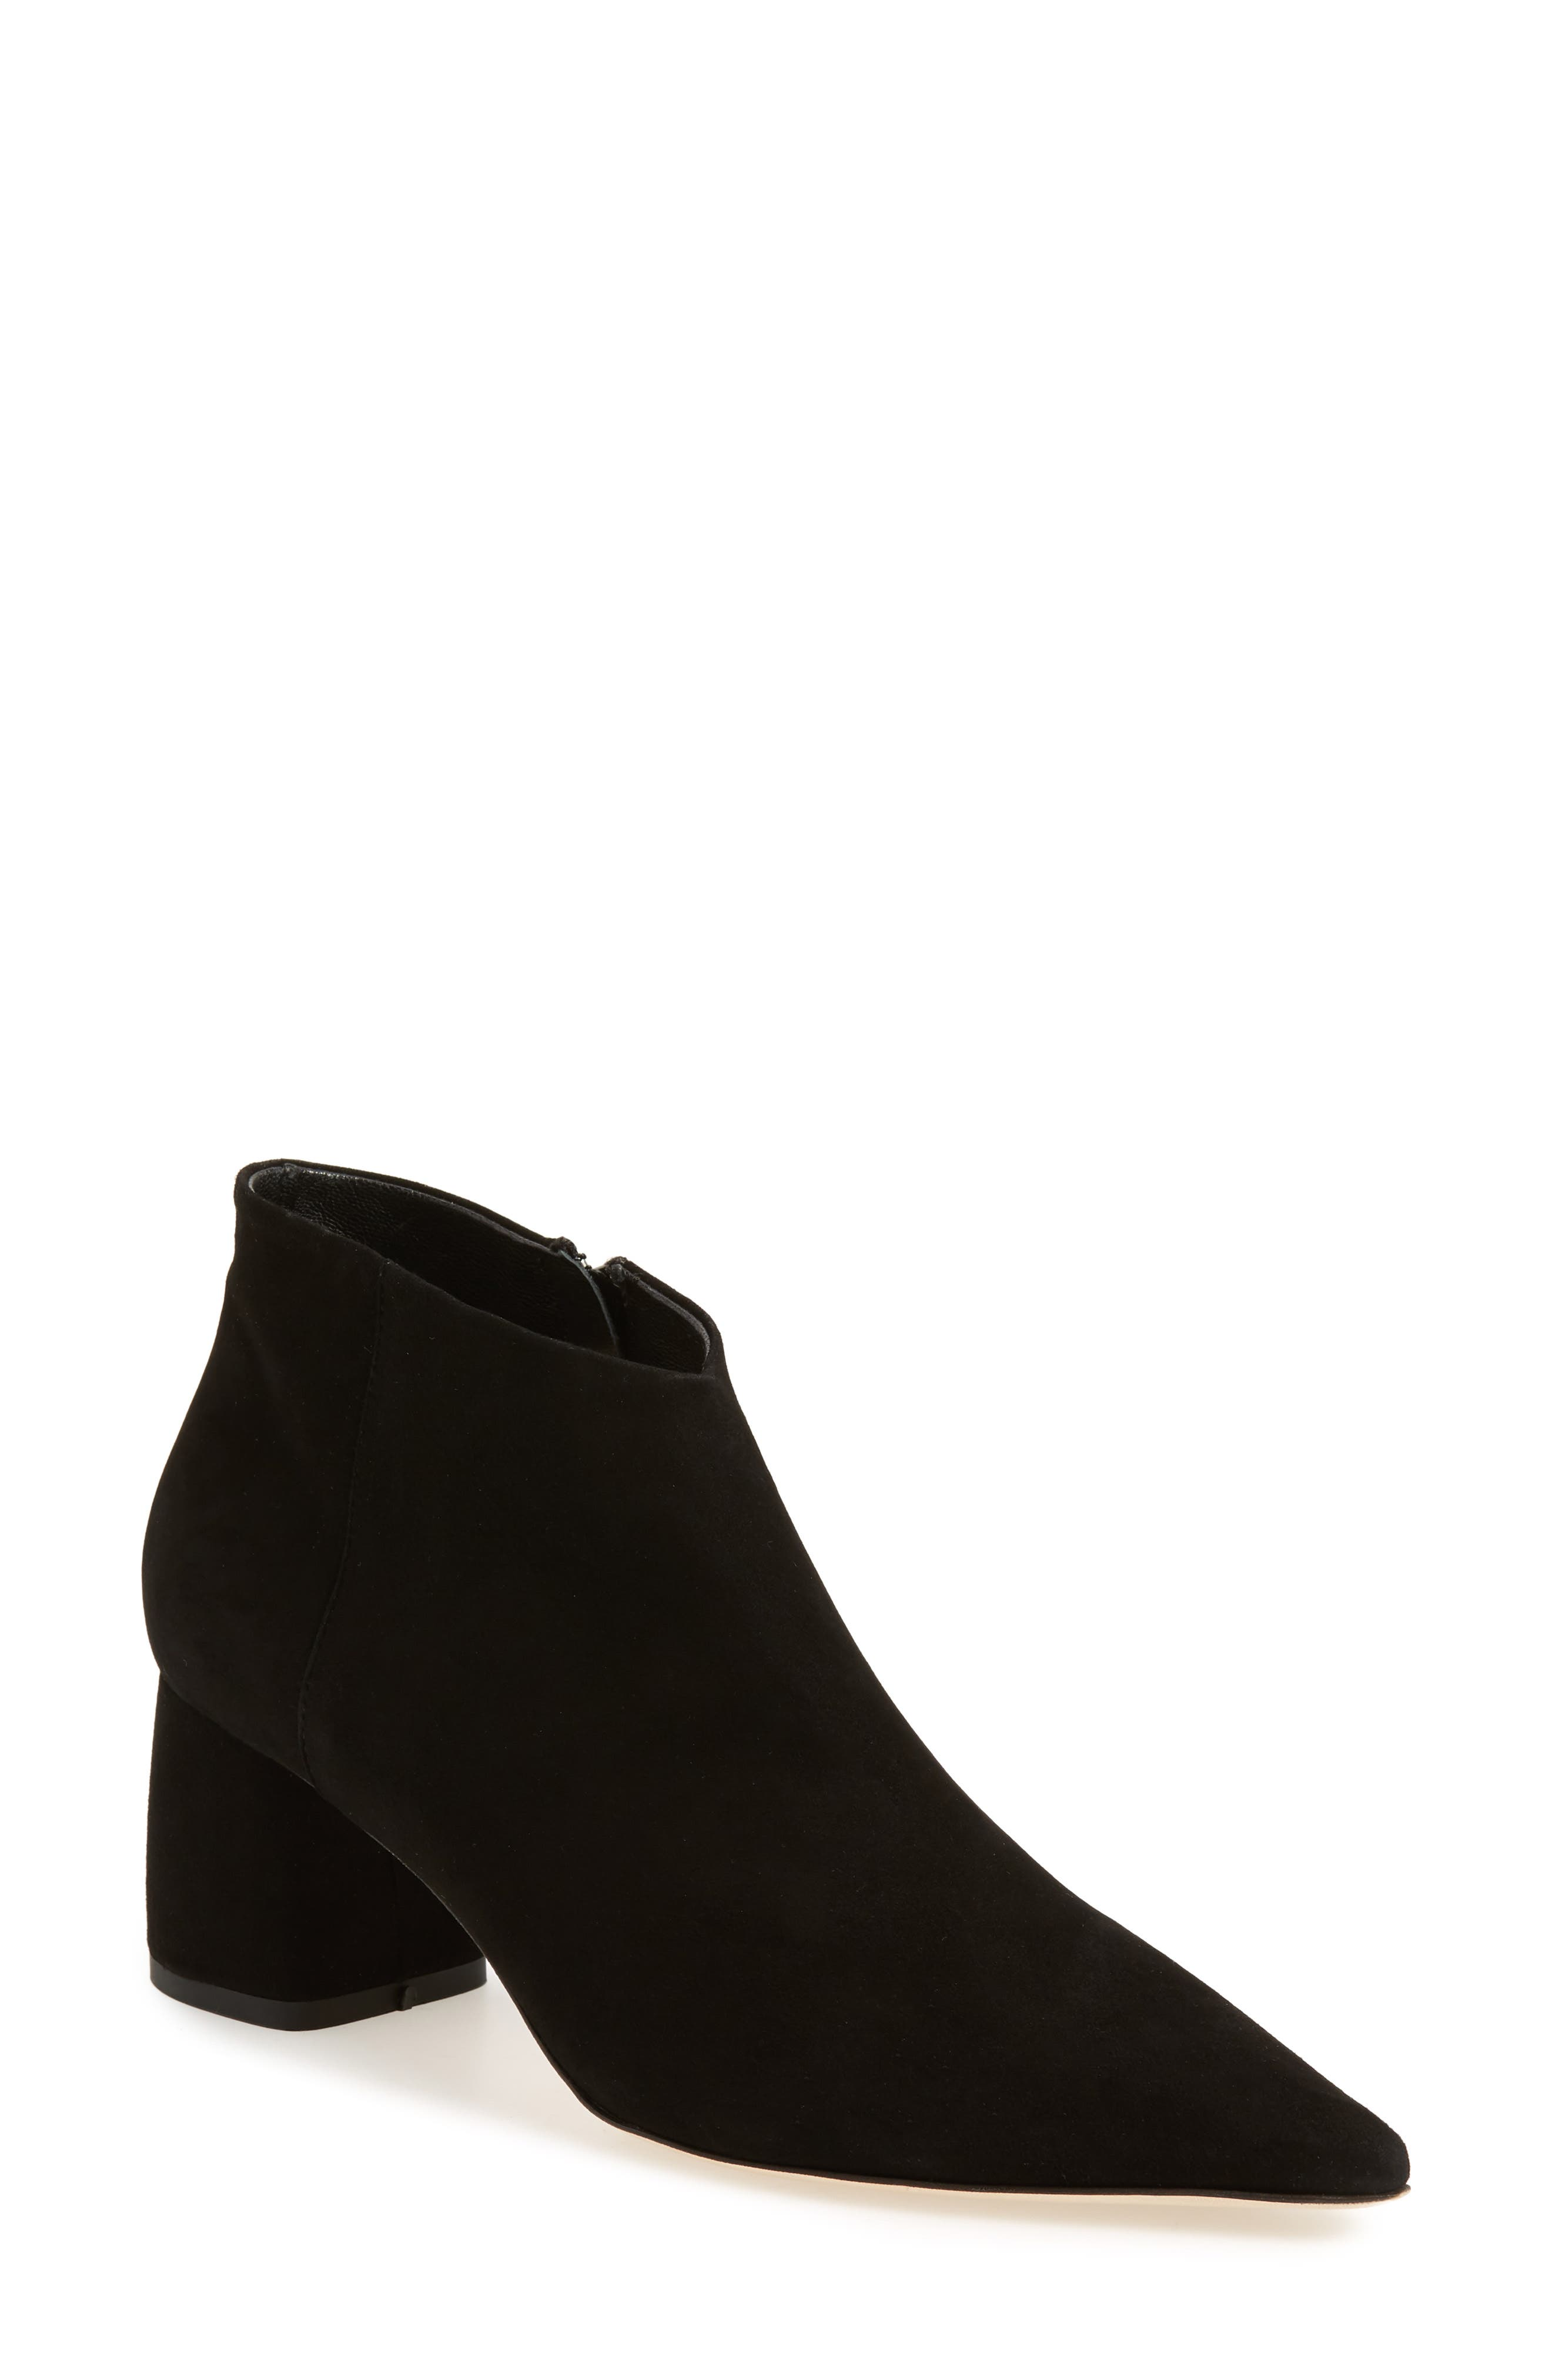 Butter Whistle Pointy Toe Bootie,                             Main thumbnail 1, color,                             001